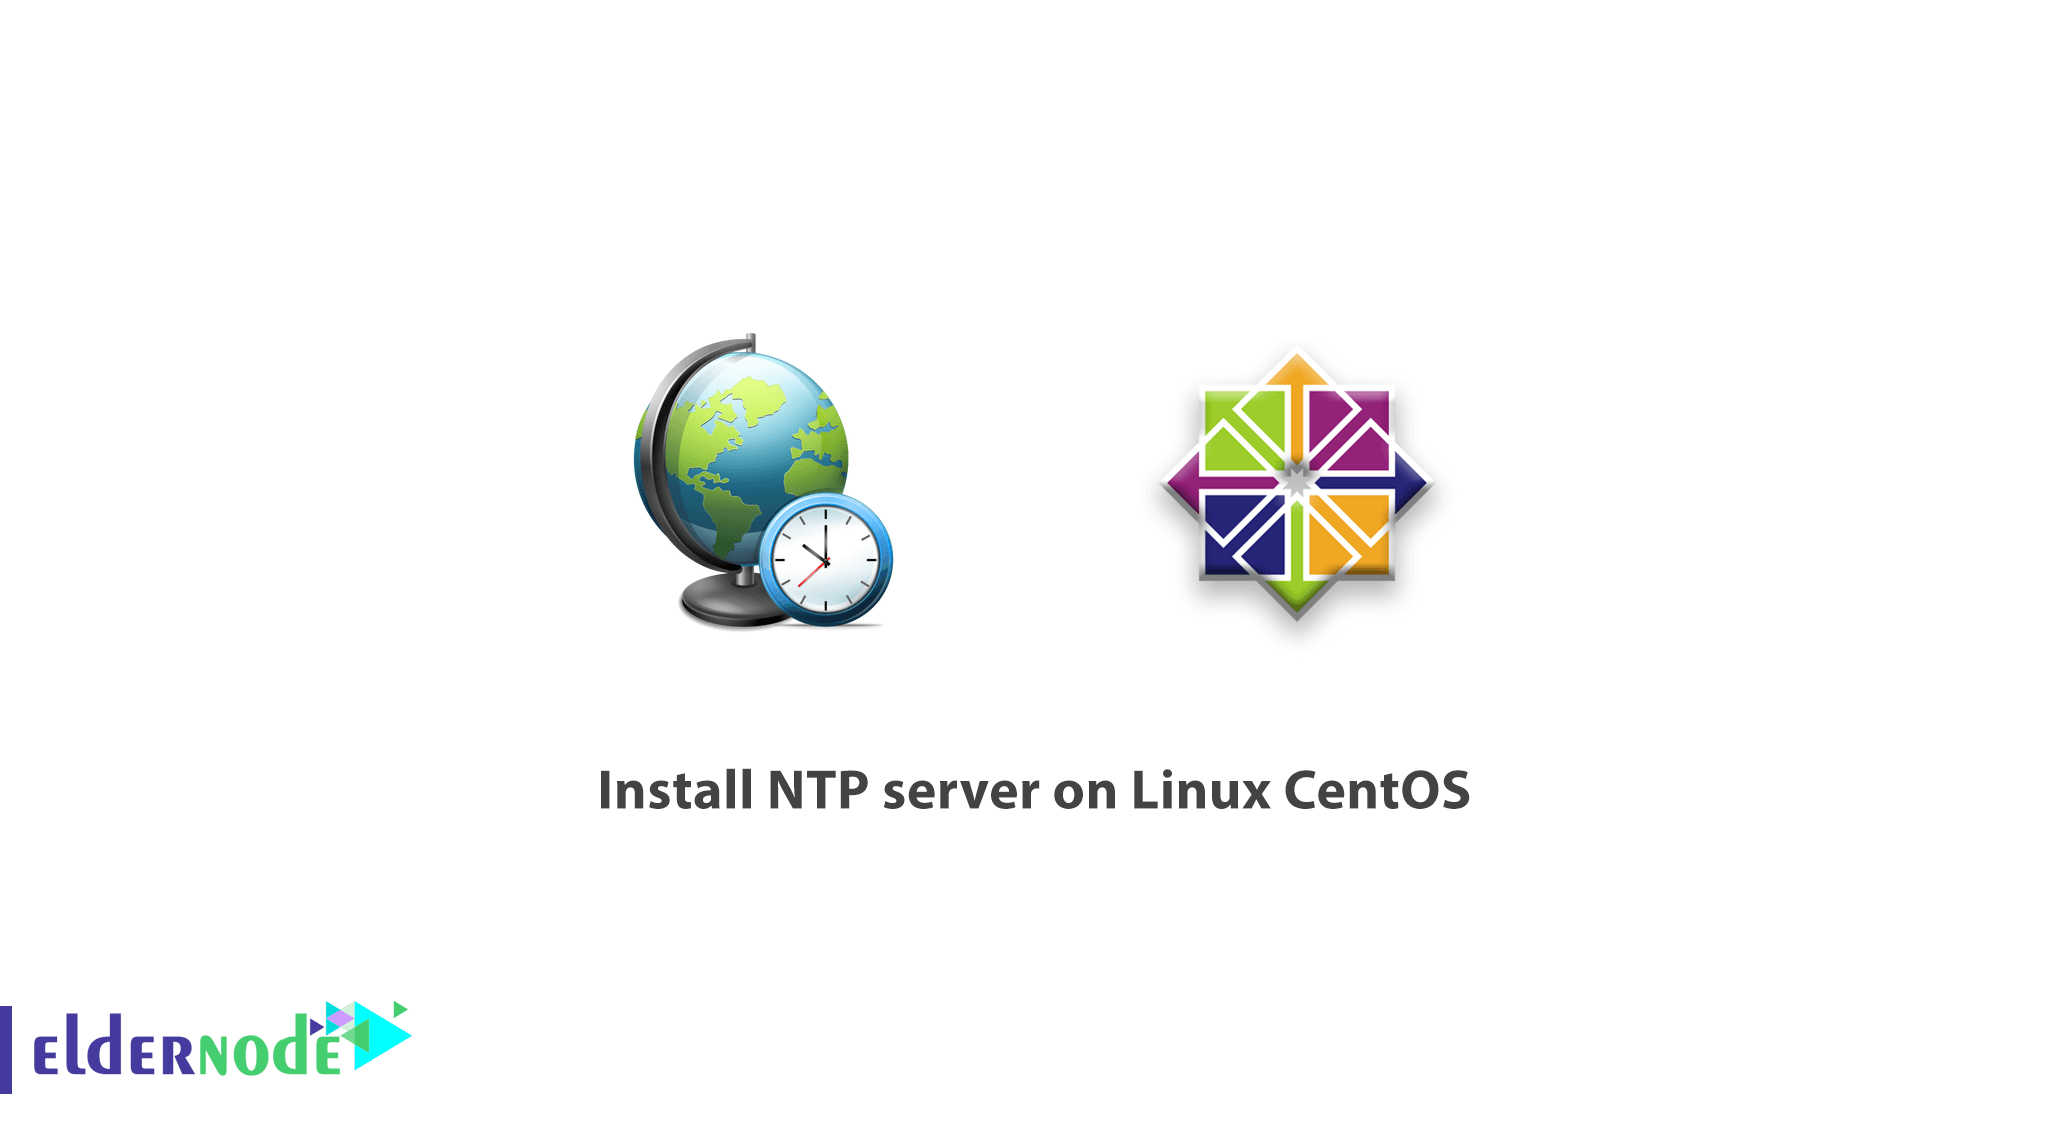 Install NTP server on Linux CentOS